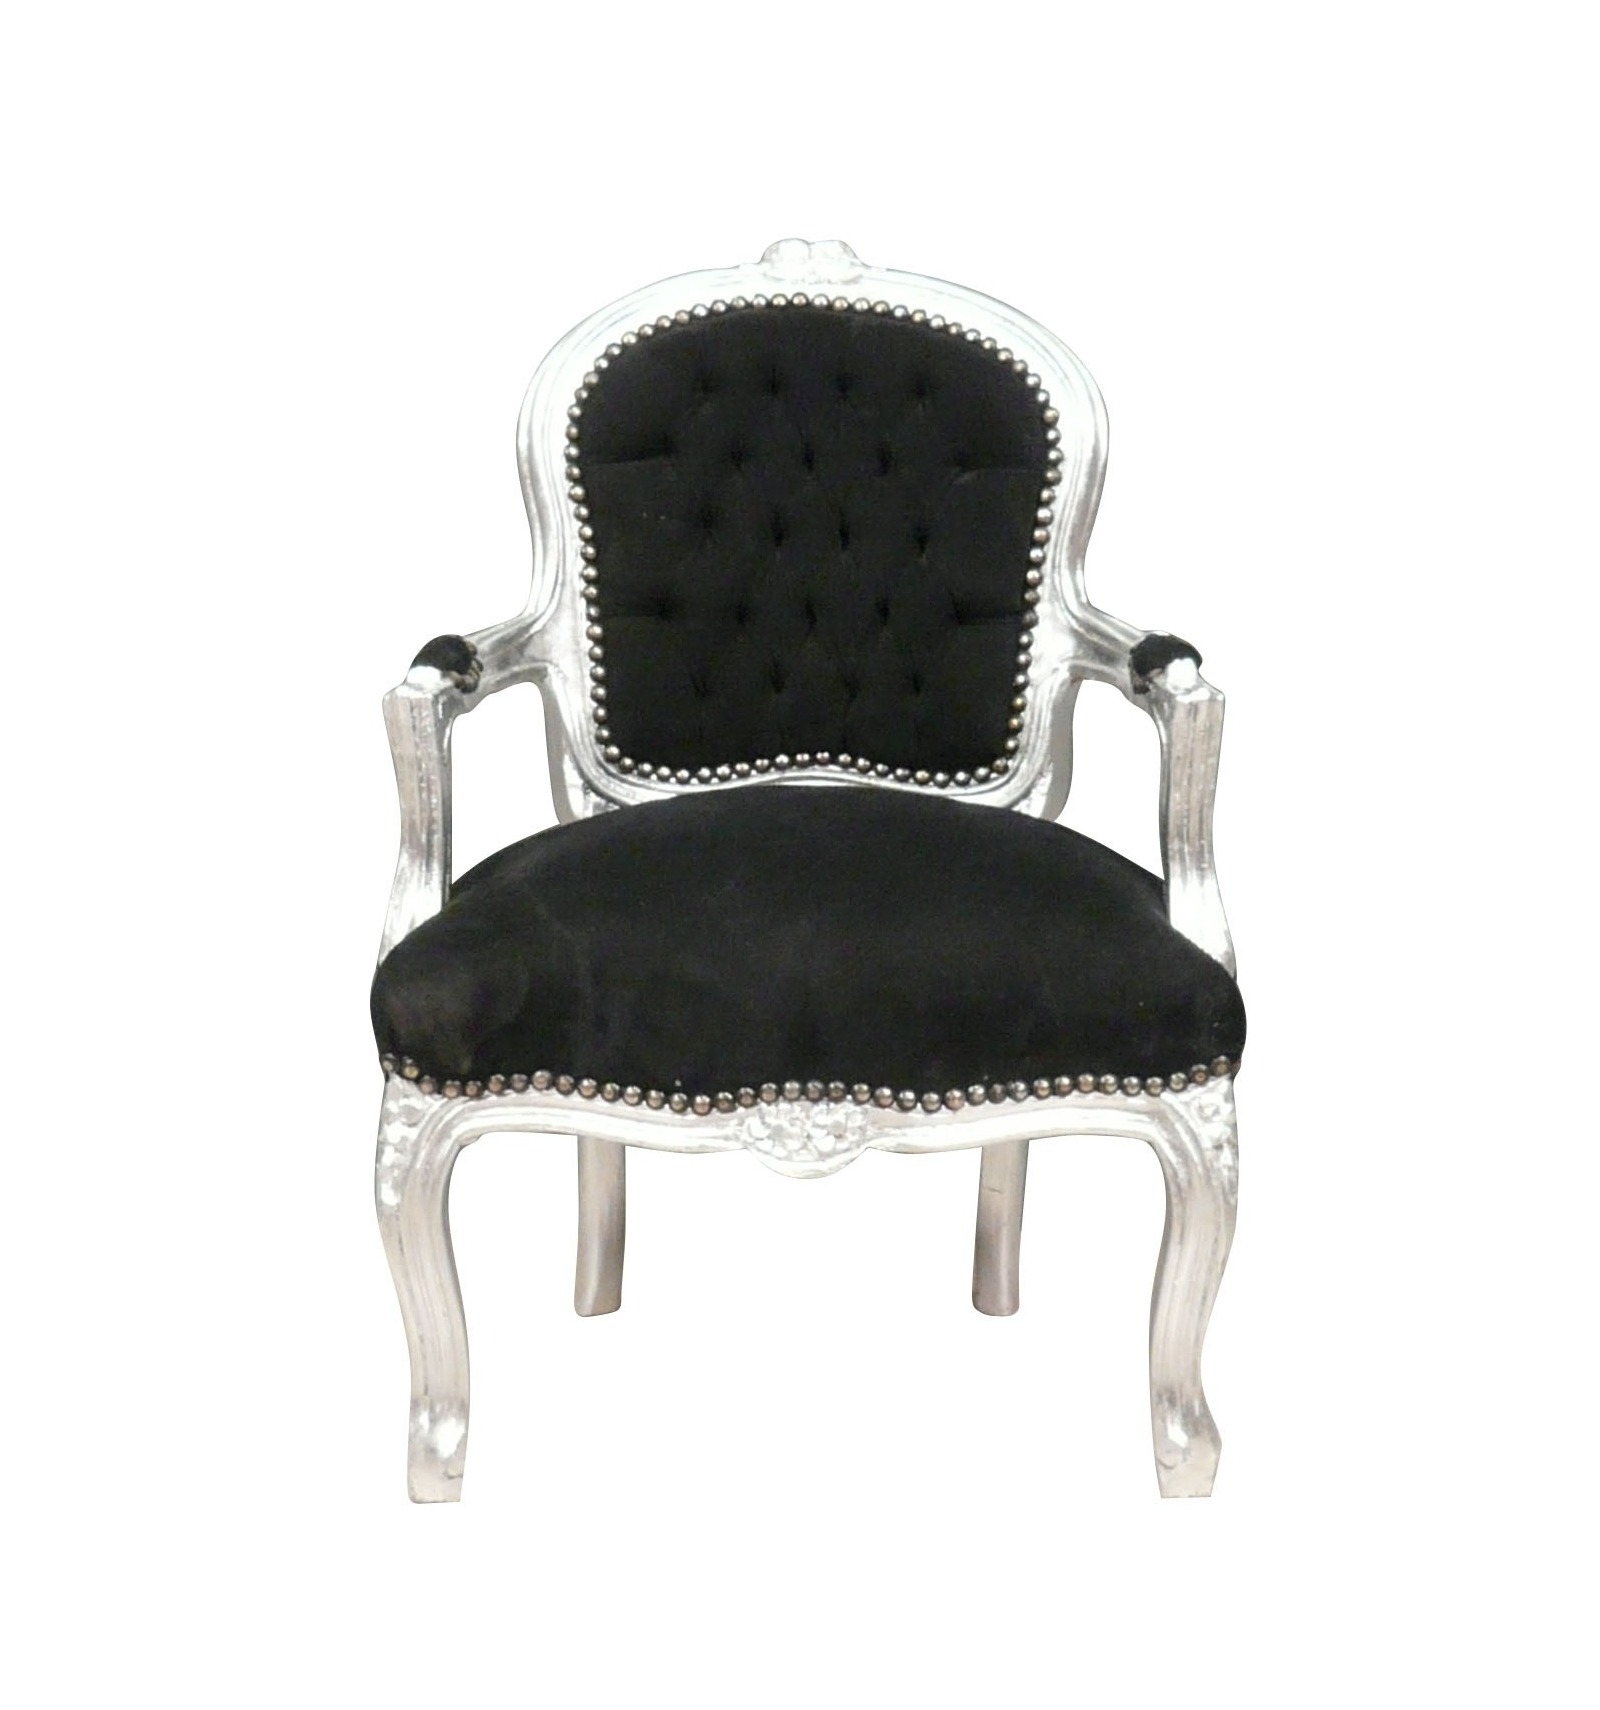 chaise louis maison du monde latest ou bien baroque with chaise louis maison du monde fauteuil. Black Bedroom Furniture Sets. Home Design Ideas